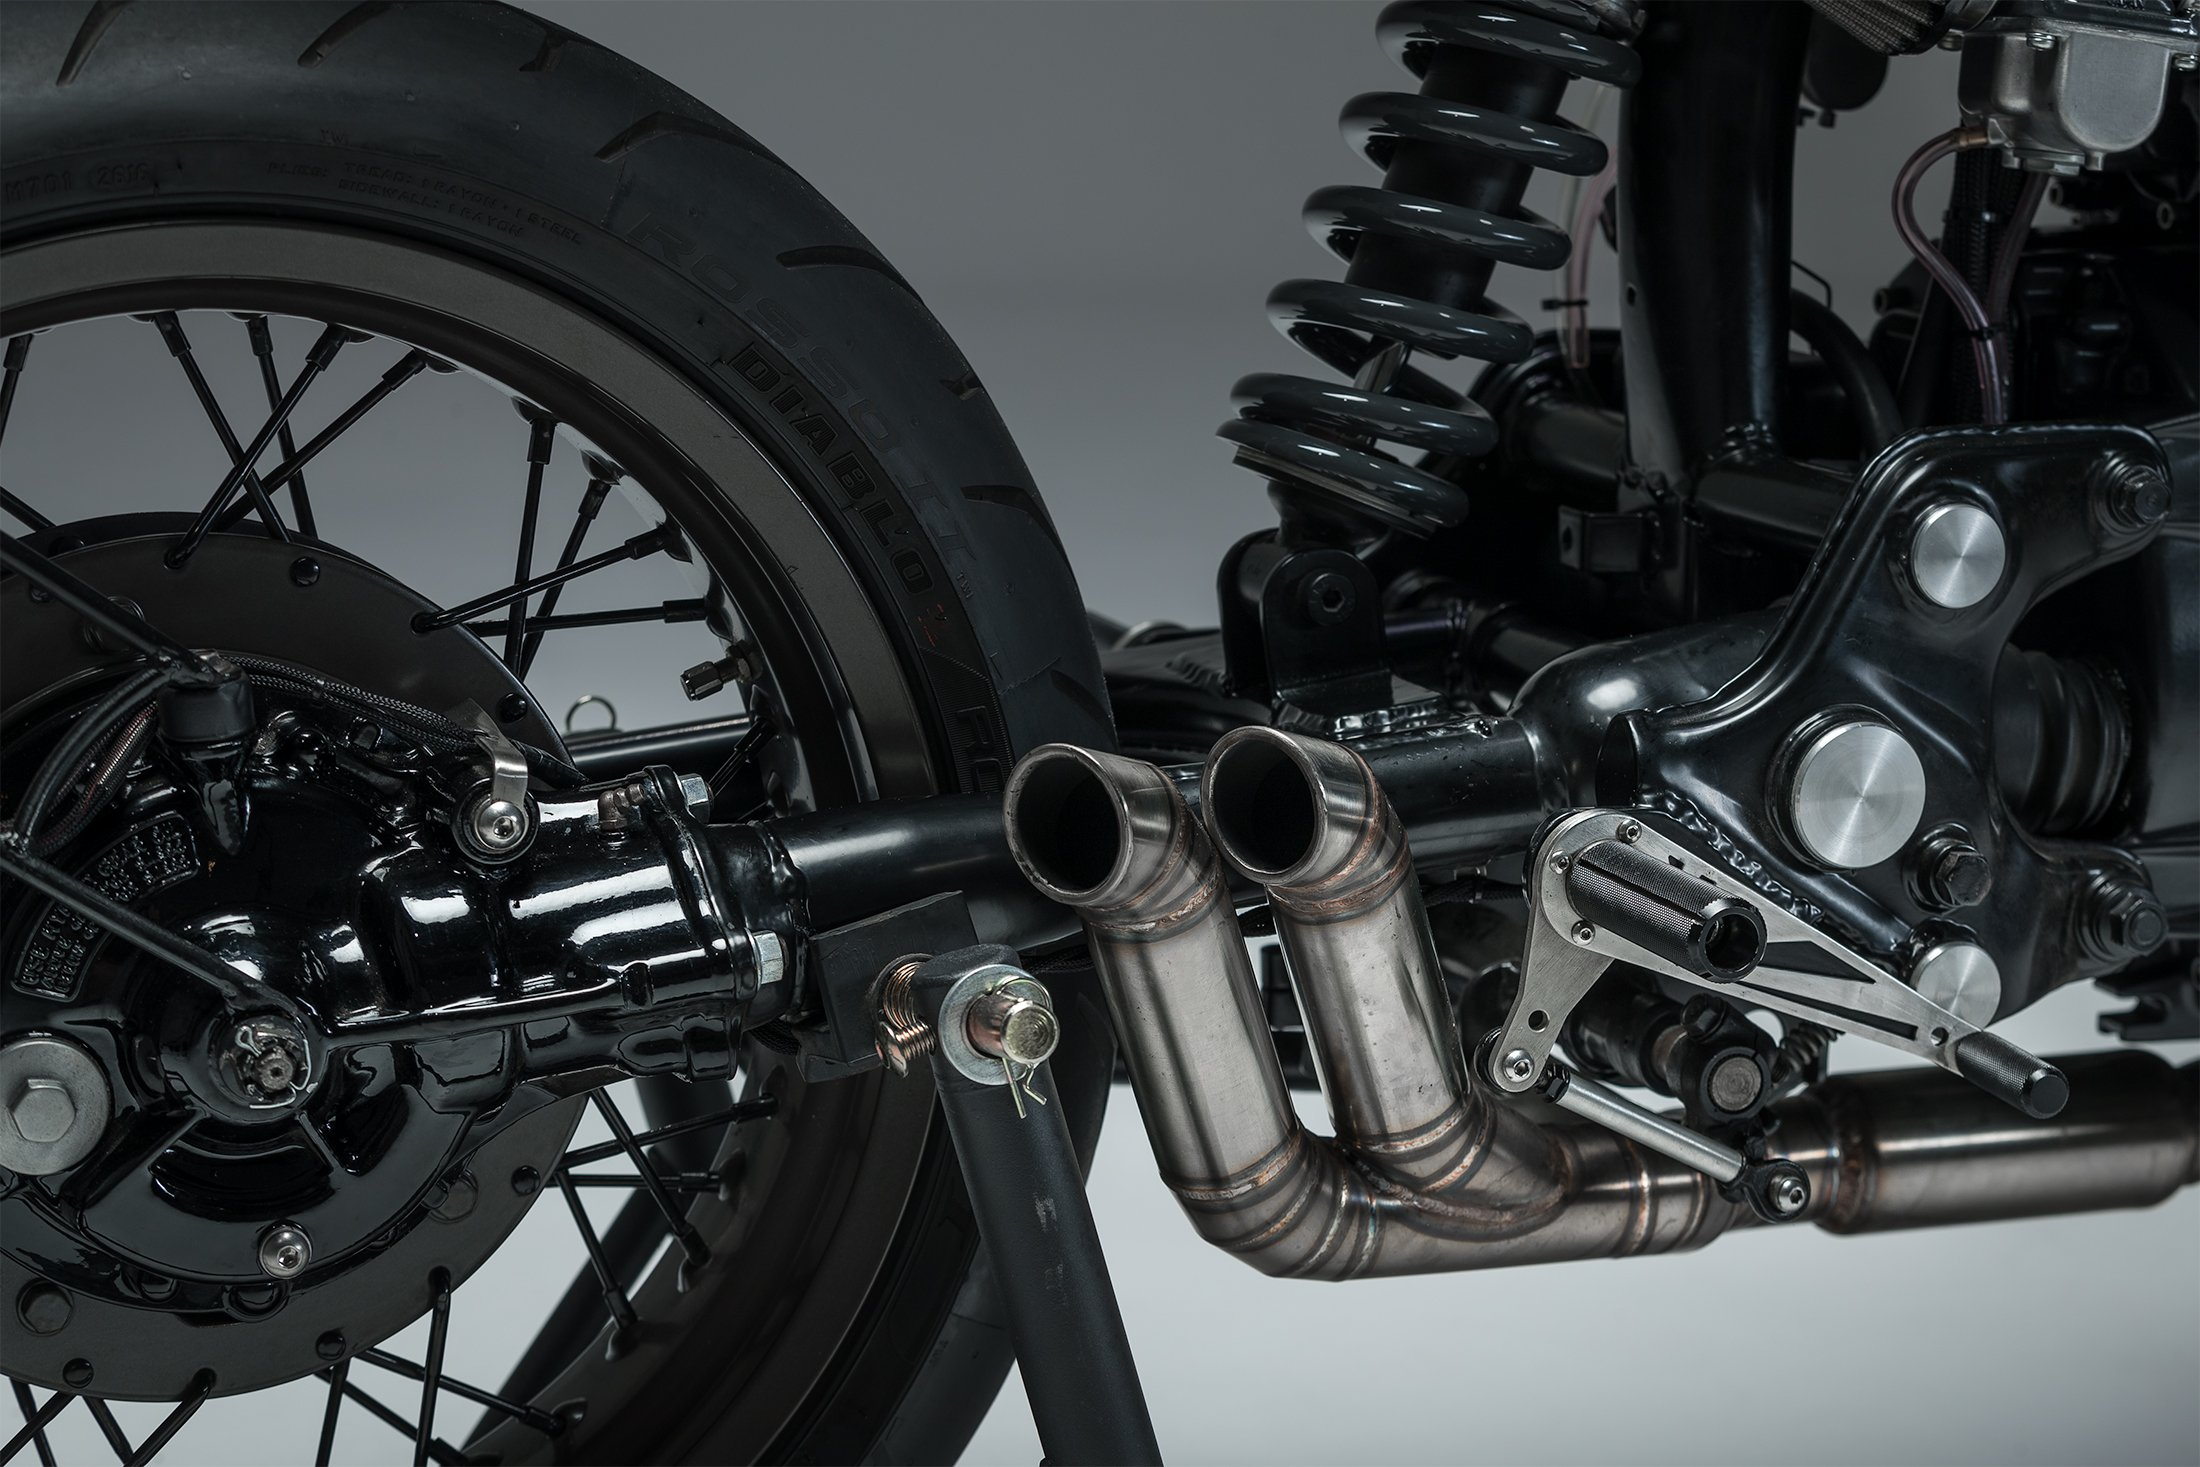 CX500 custom cafe racer honda exhaust